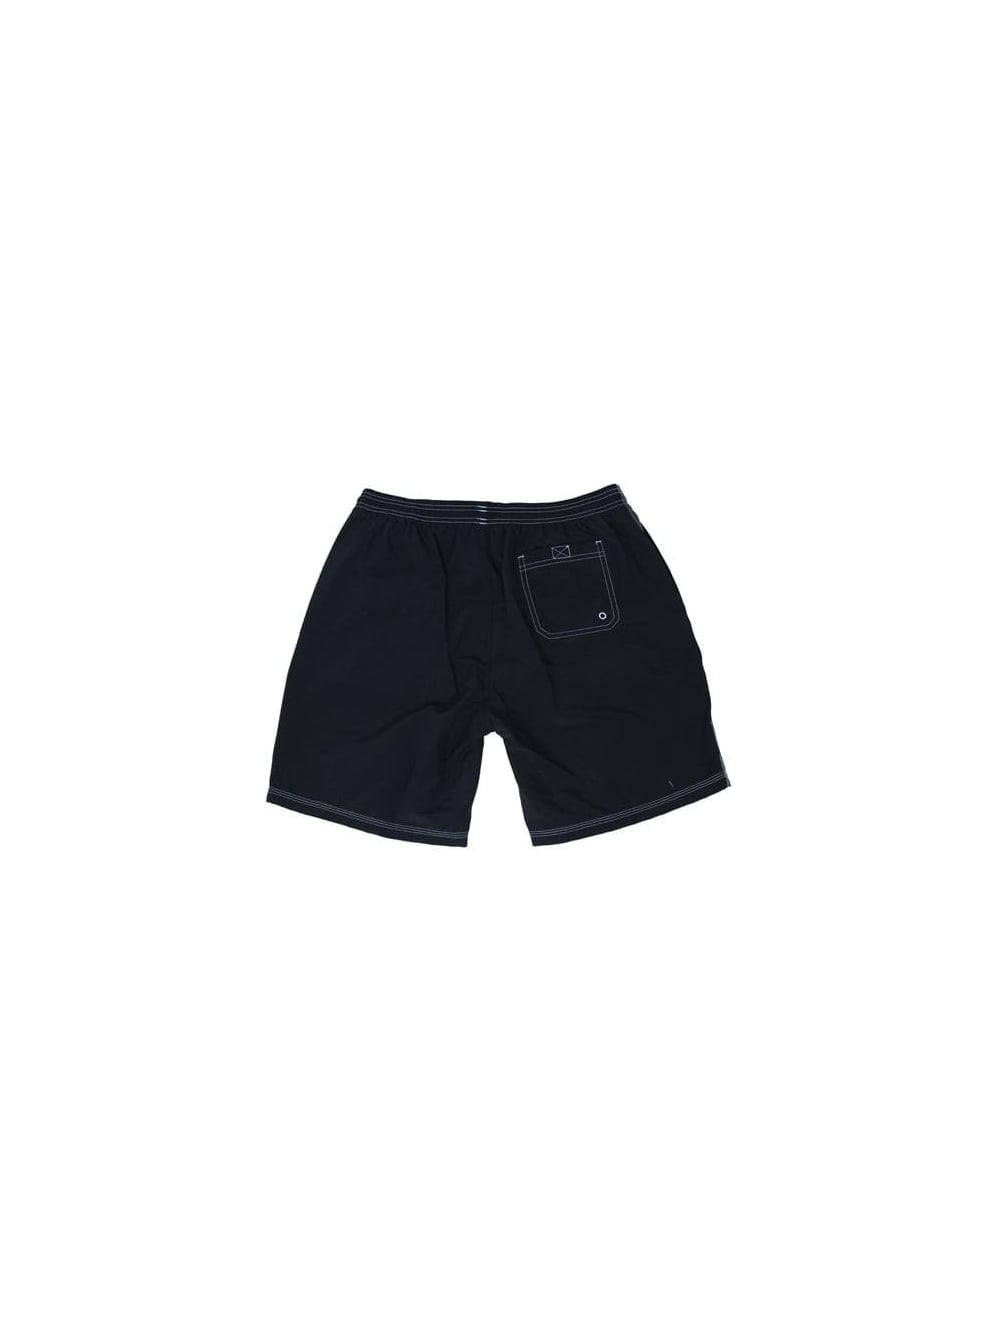 3d6e09e7b6d88 Hugo Boss Black Killifish Swim Shorts Shorts in Black - Northern Threads